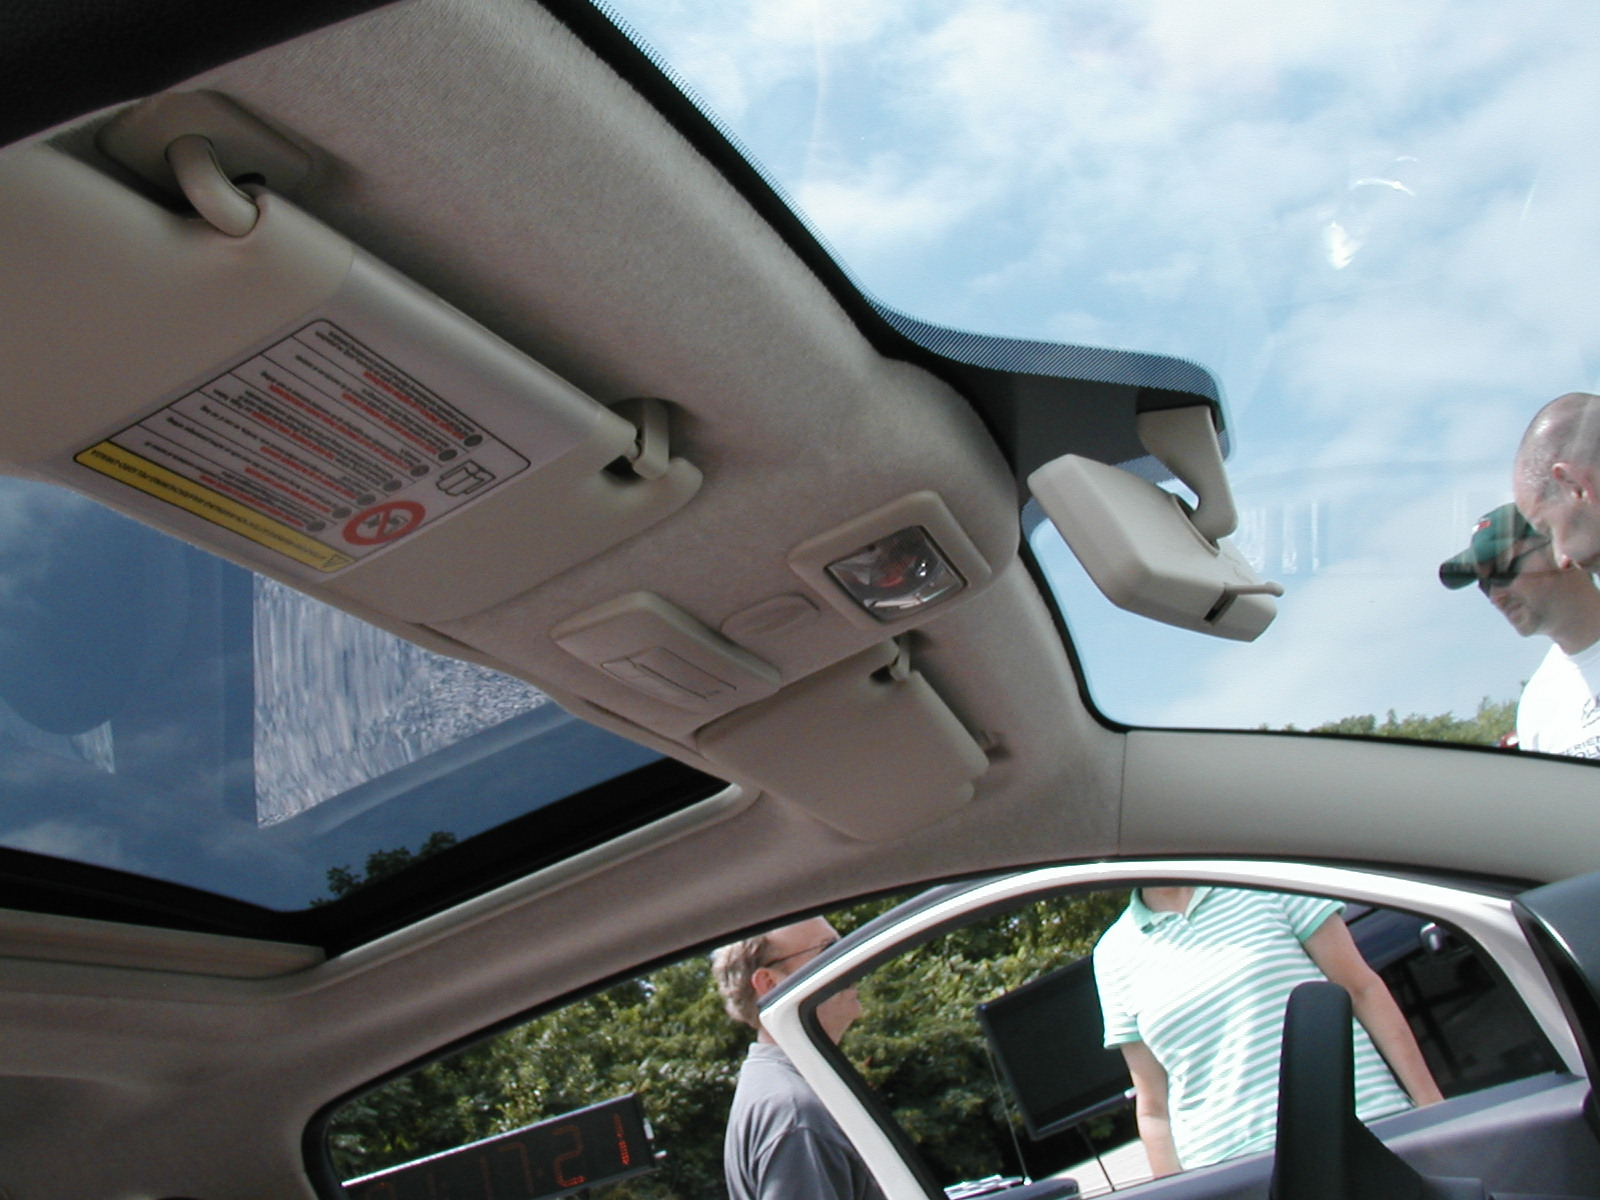 Inside The Fiat 500 Fixed Glass Roof Or Opening Skydome